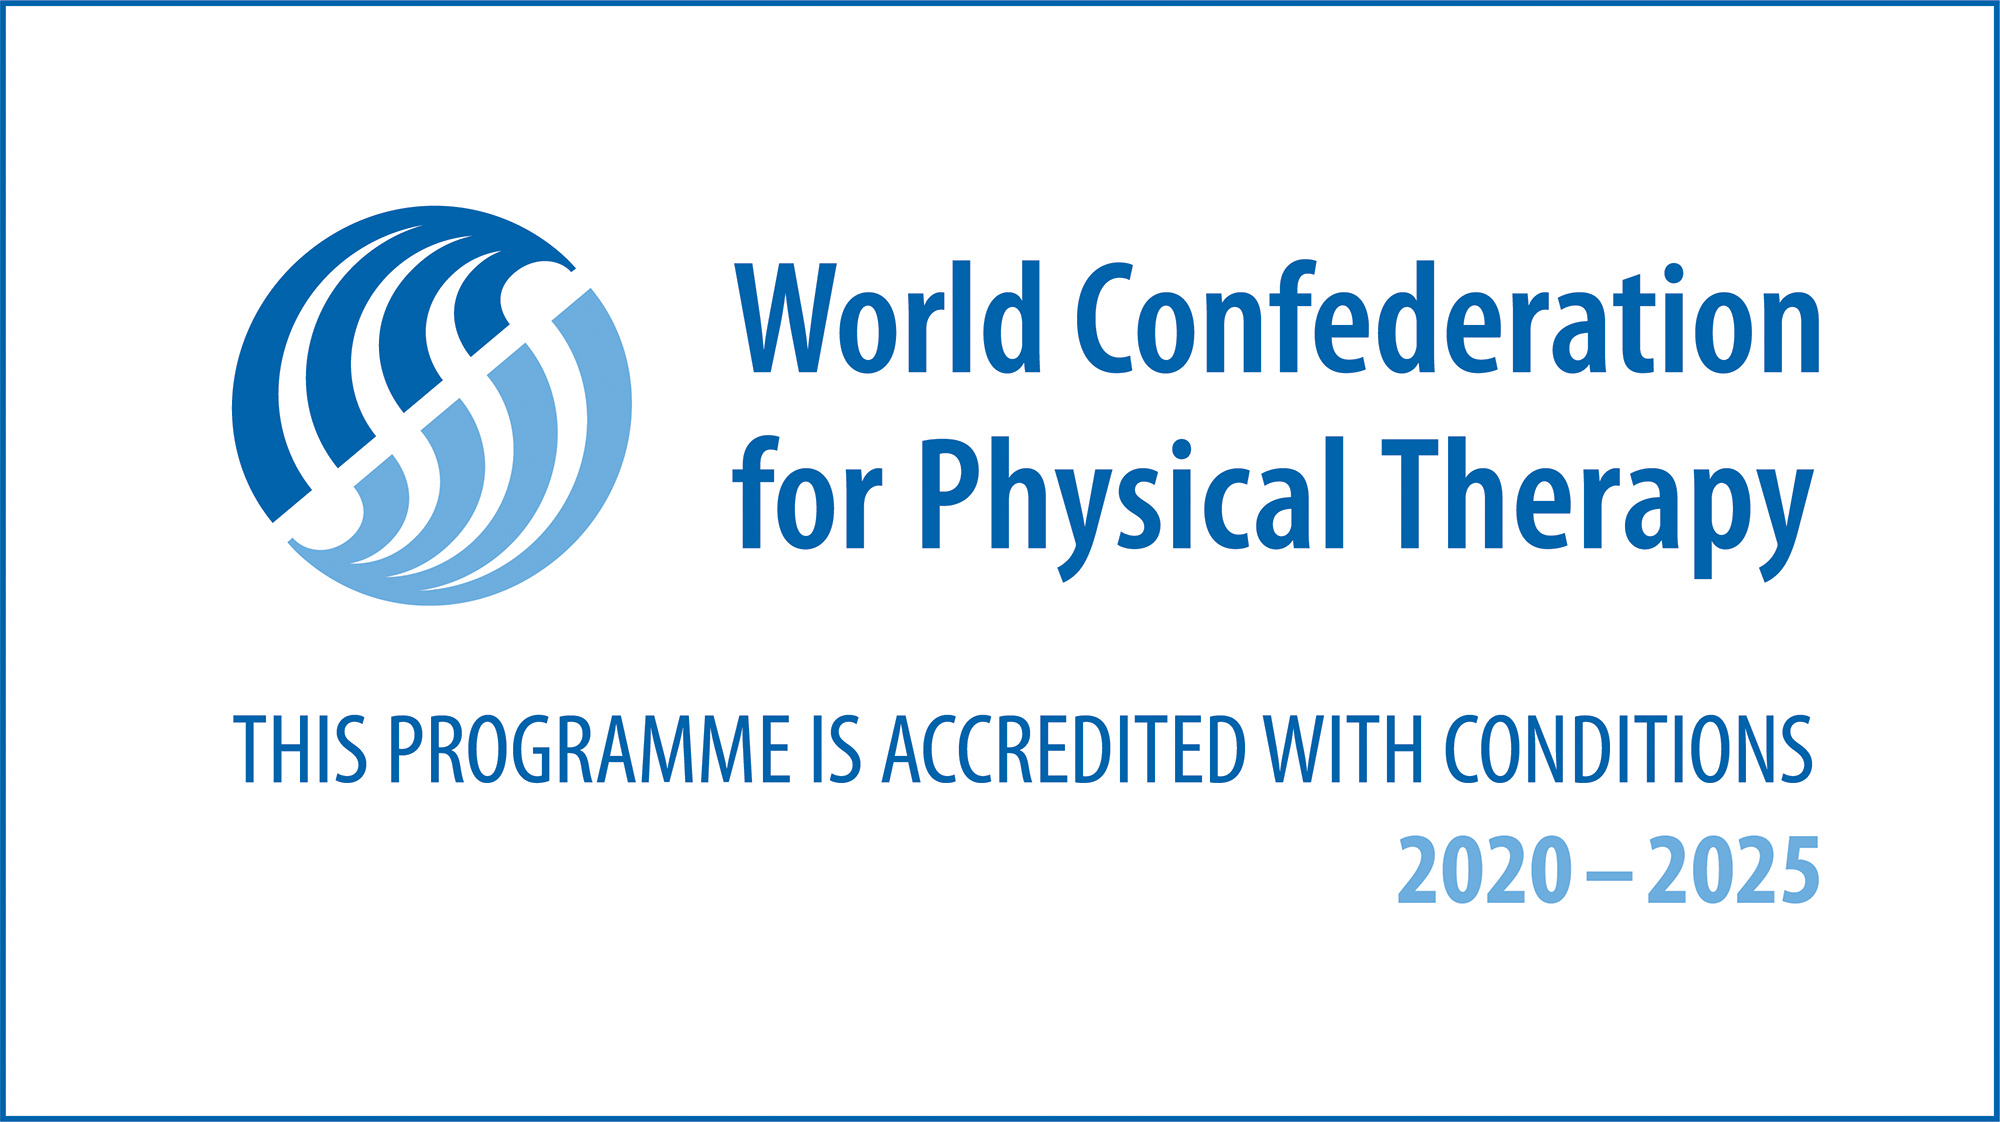 World Confederation for Physical Therapy Accredited